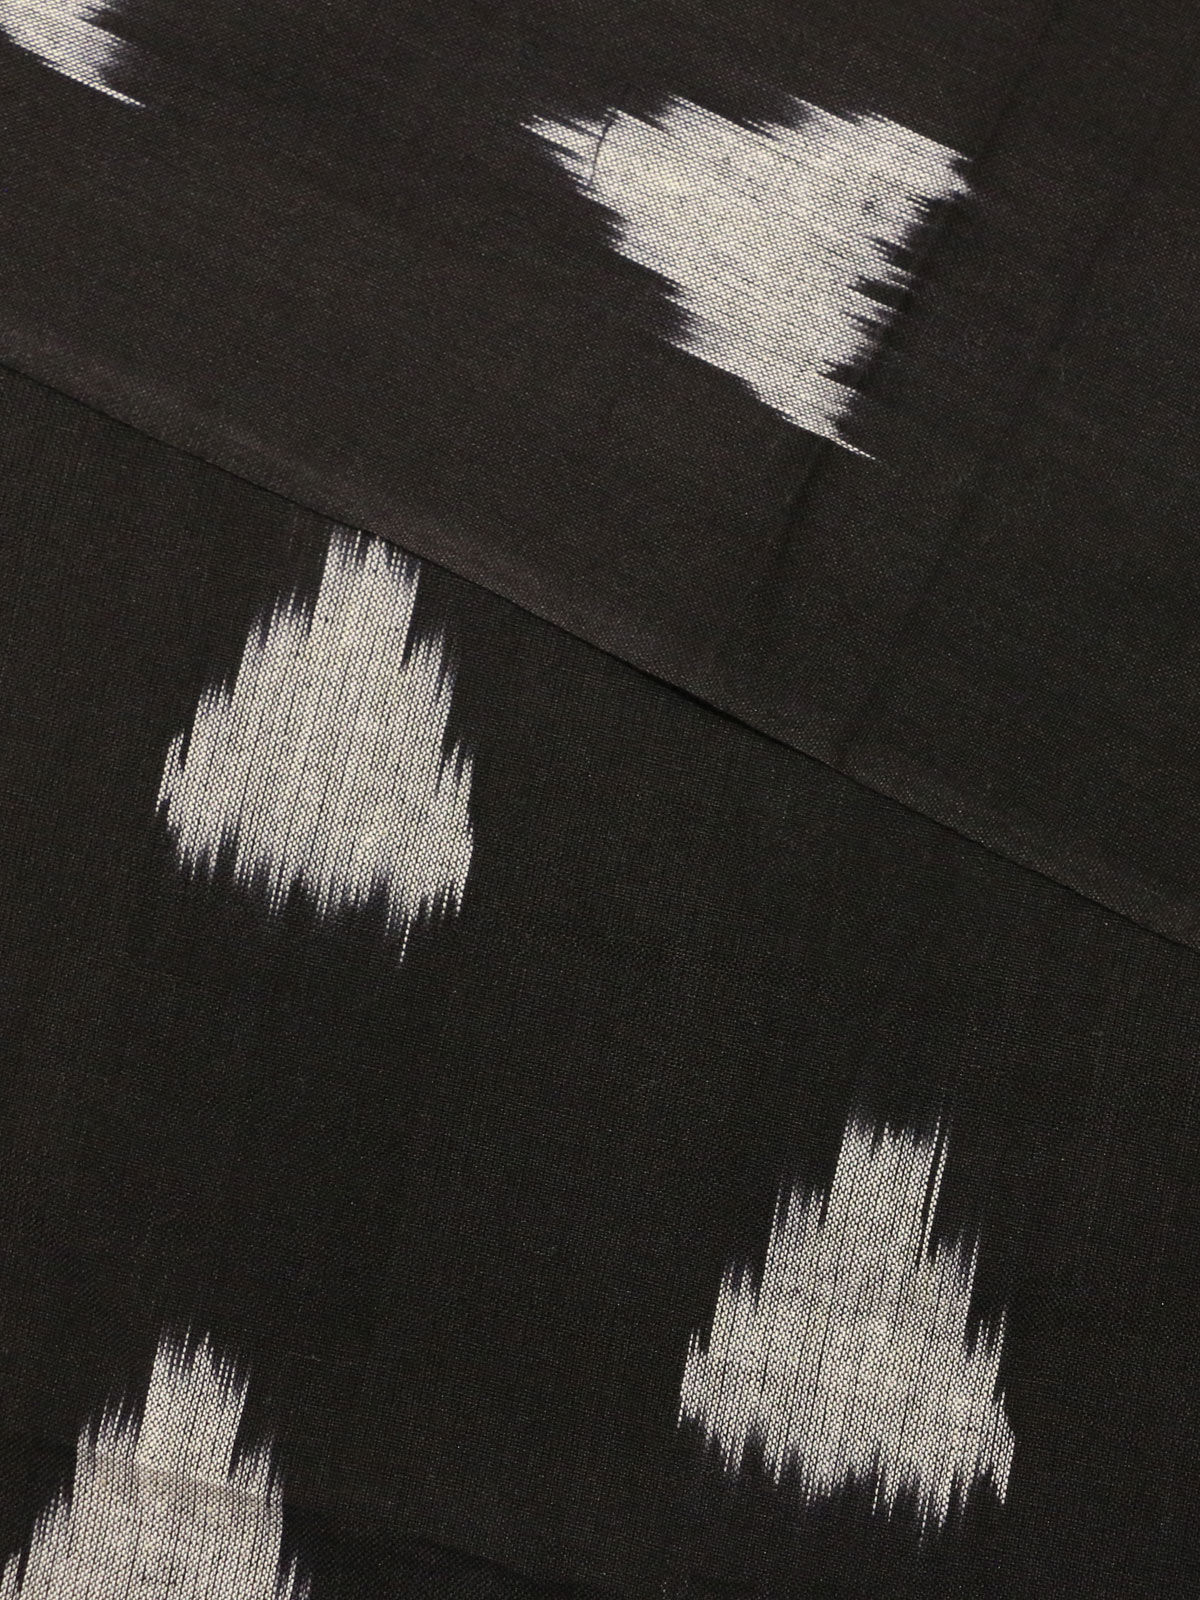 Black color ikat handloom cotton fabric